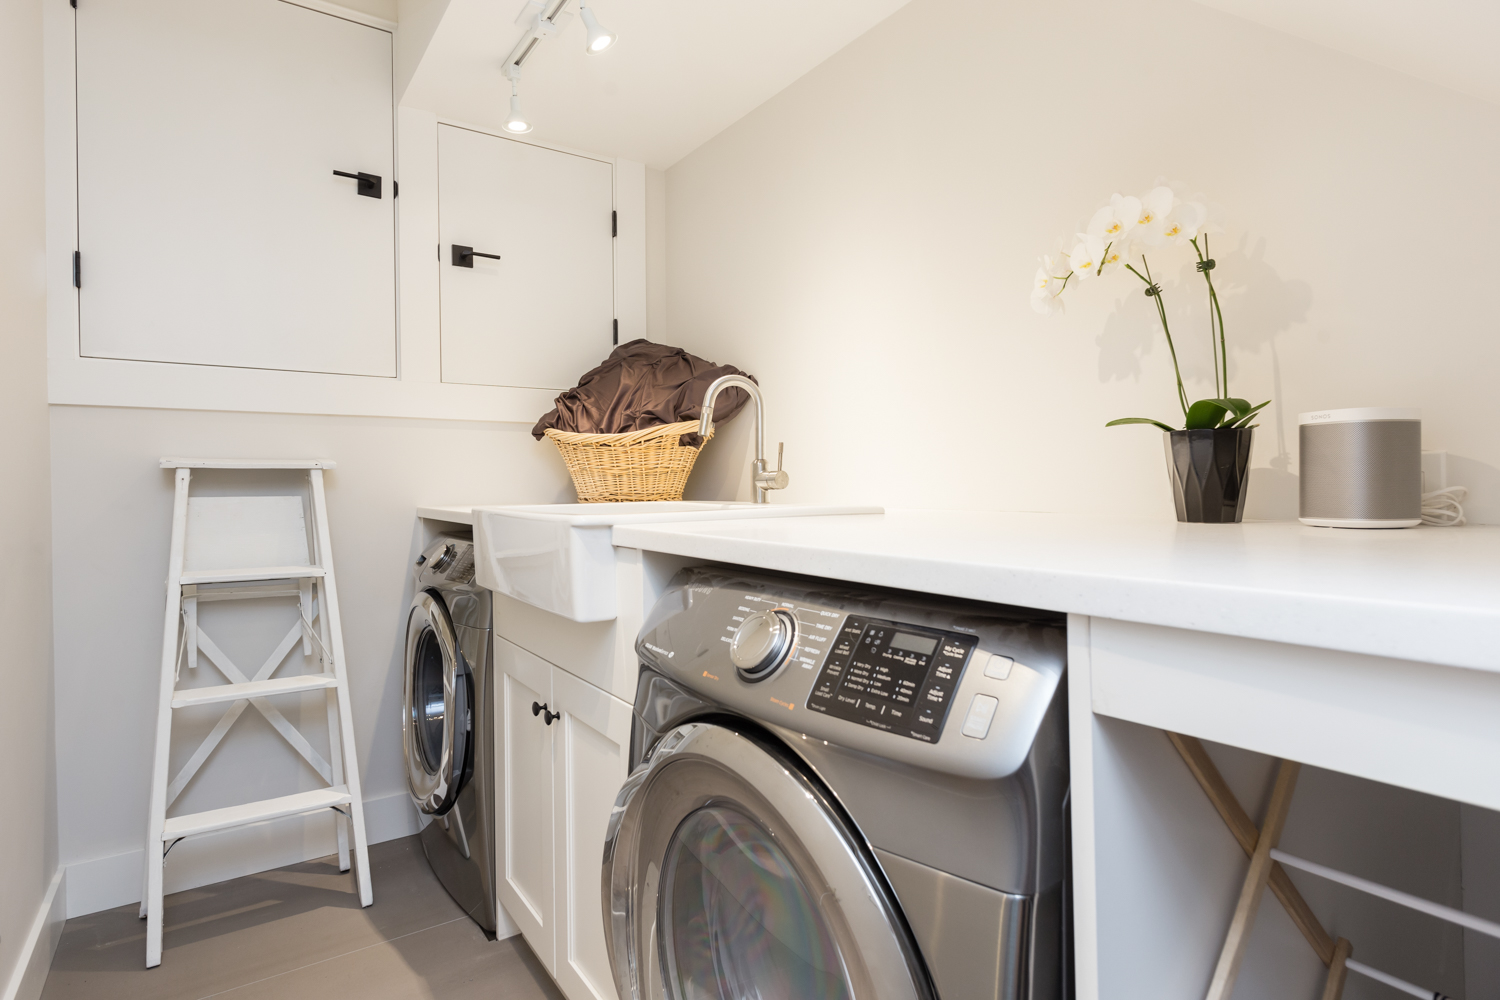 Laundry Room - Kitsilano - 3696 West 2nd Avenue